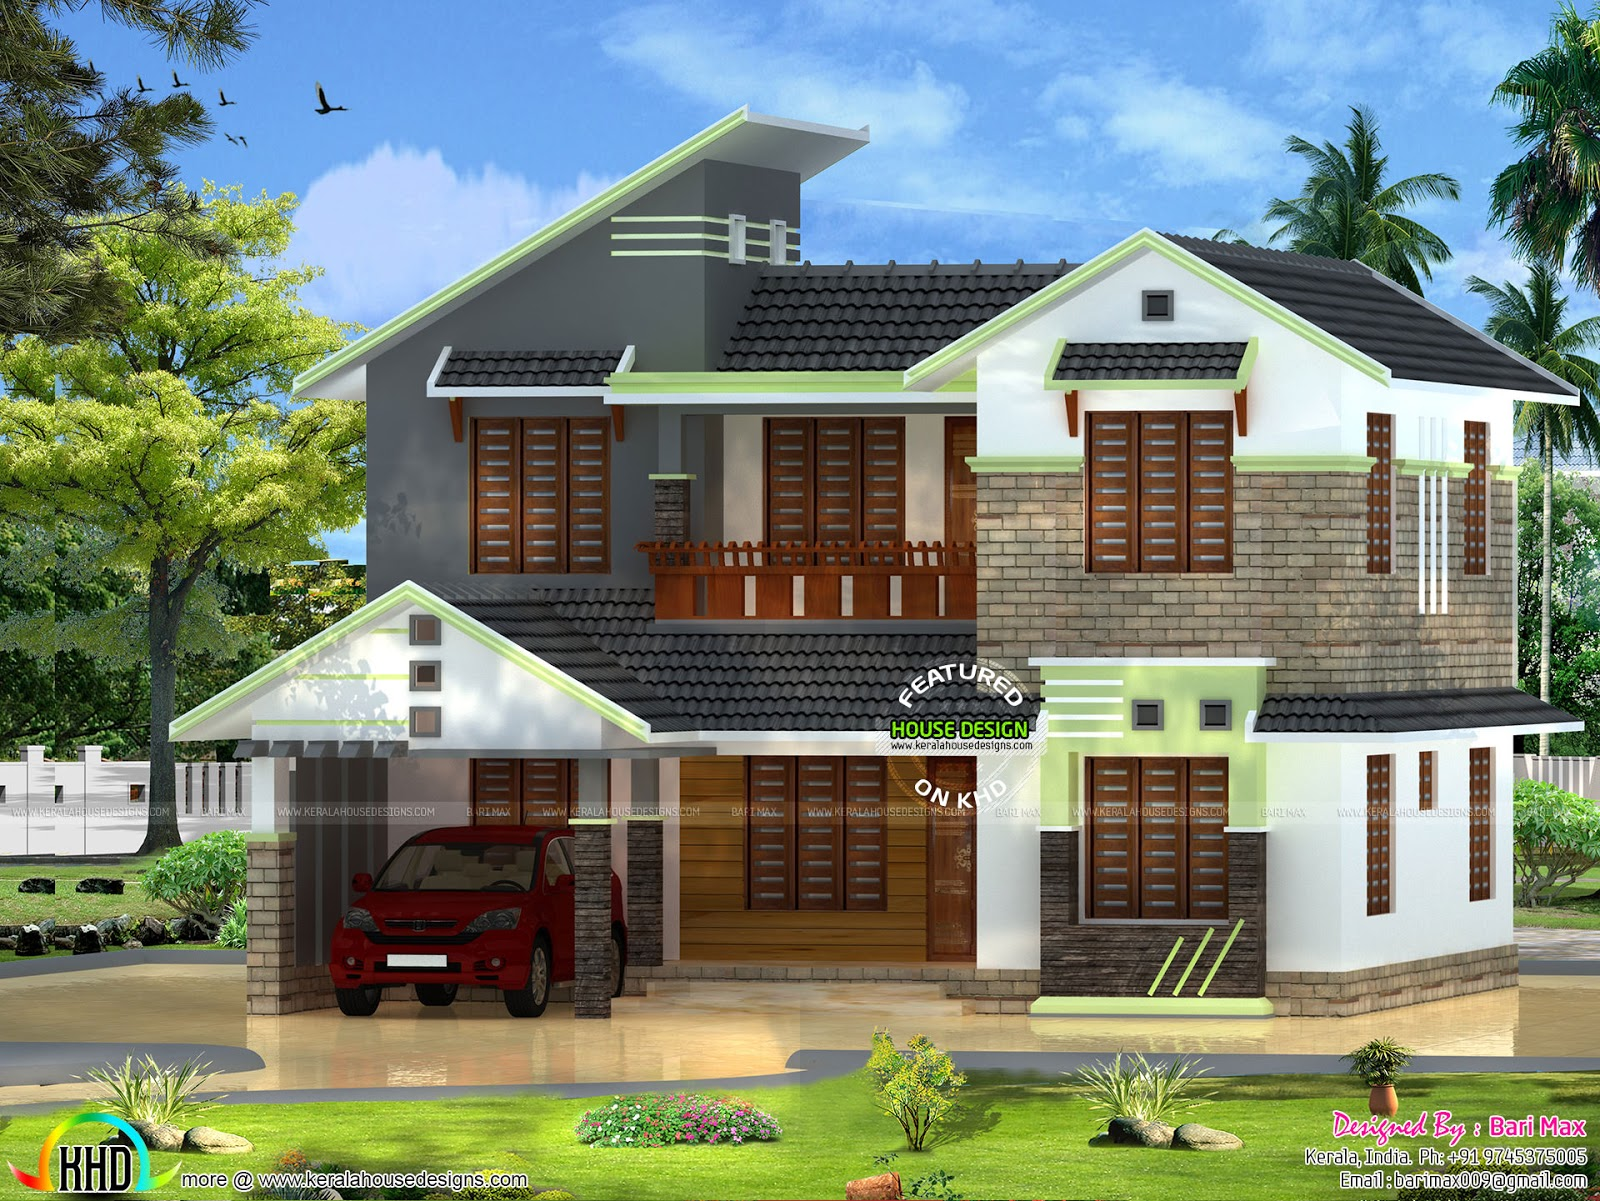 5 BHK House Design. Facilities Of The House